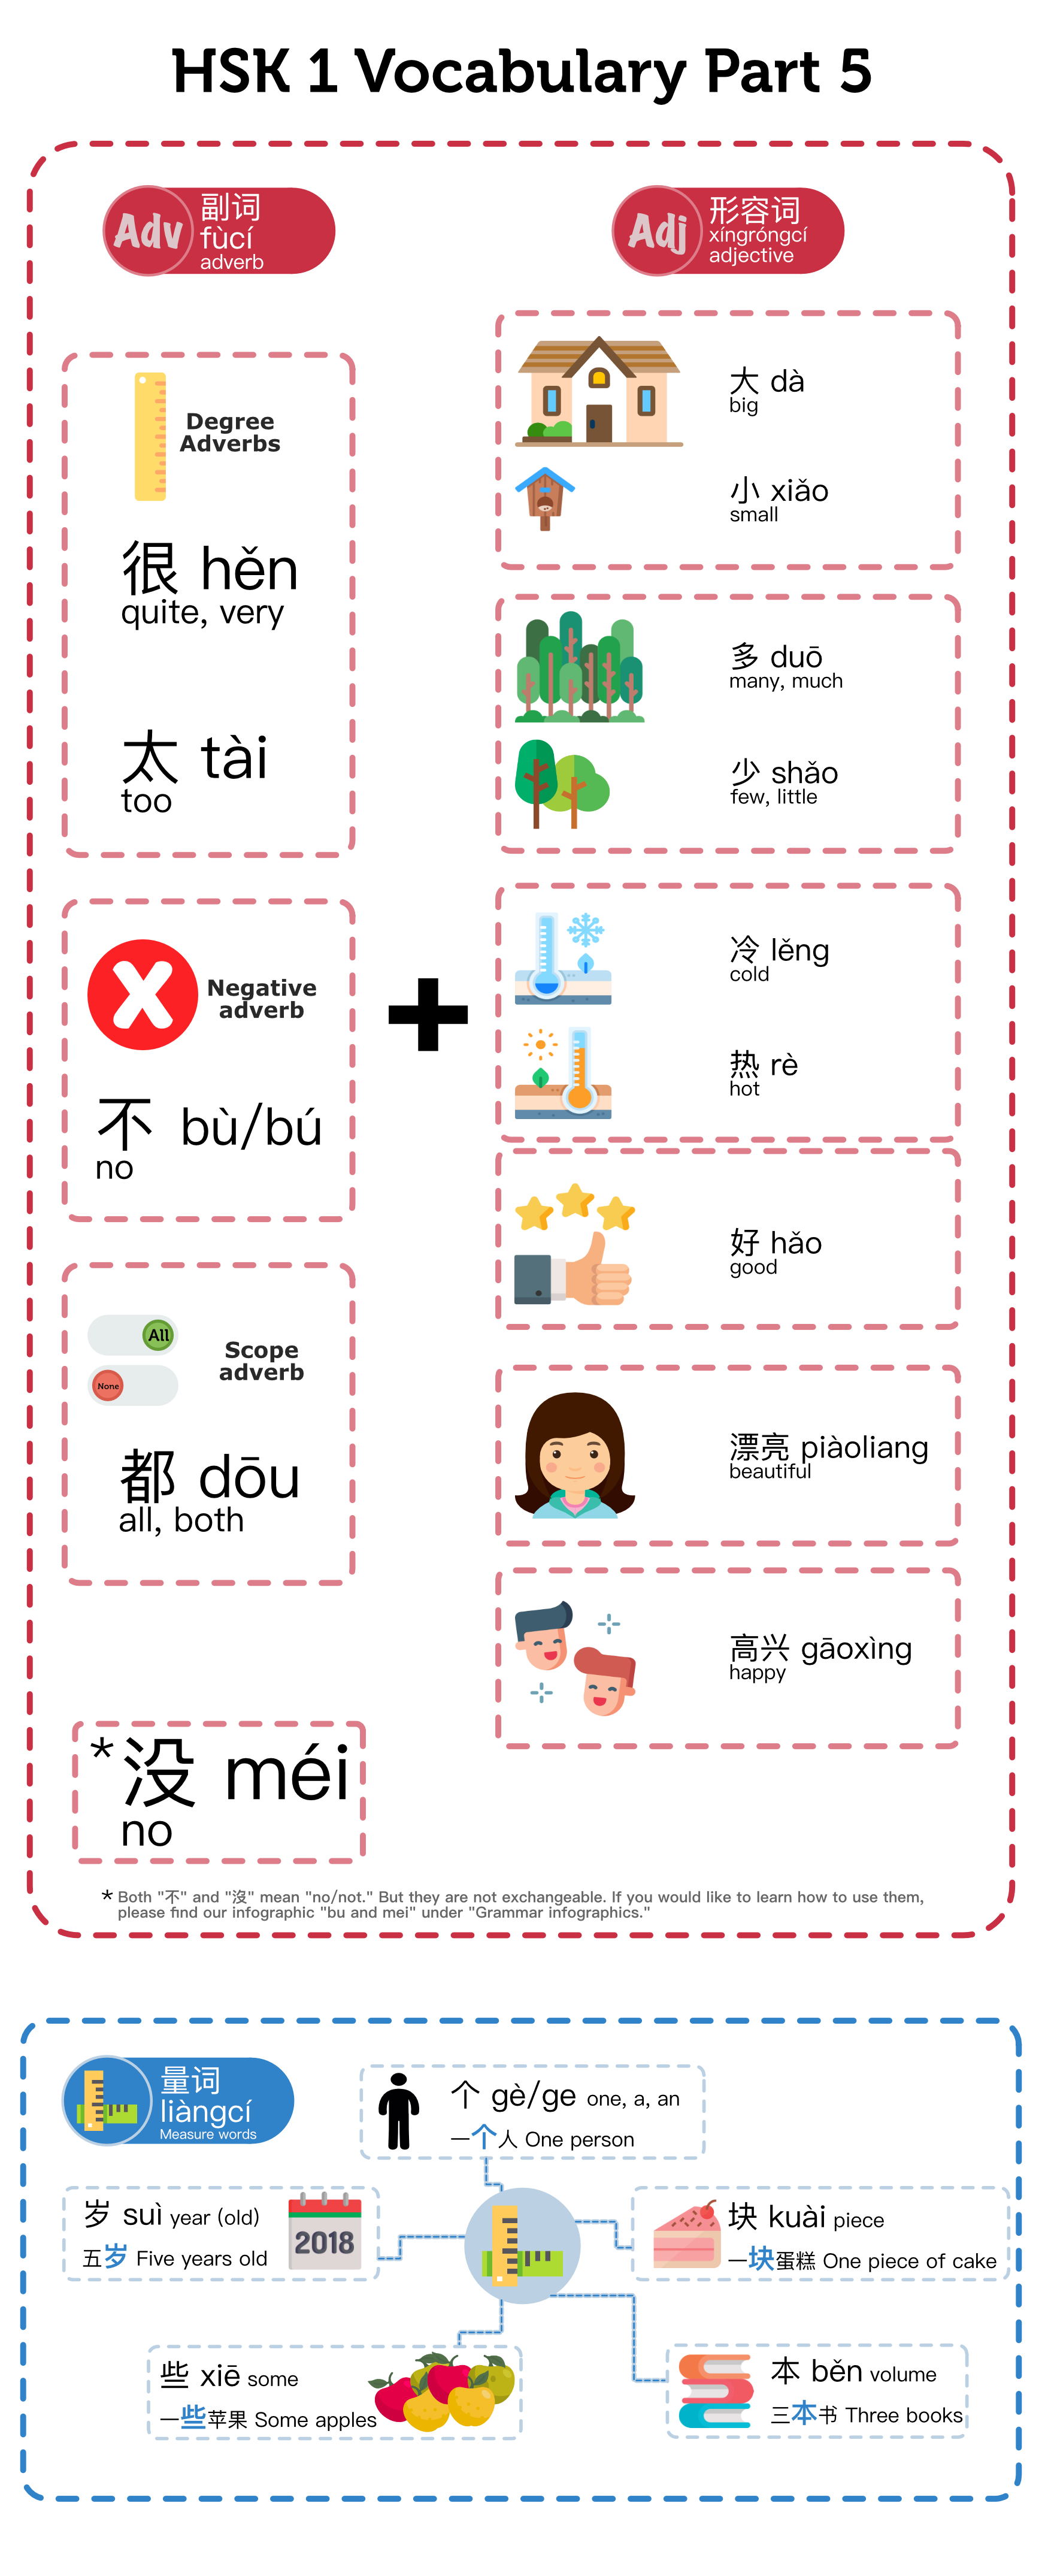 Hsk 1 Vocabulary Part 5